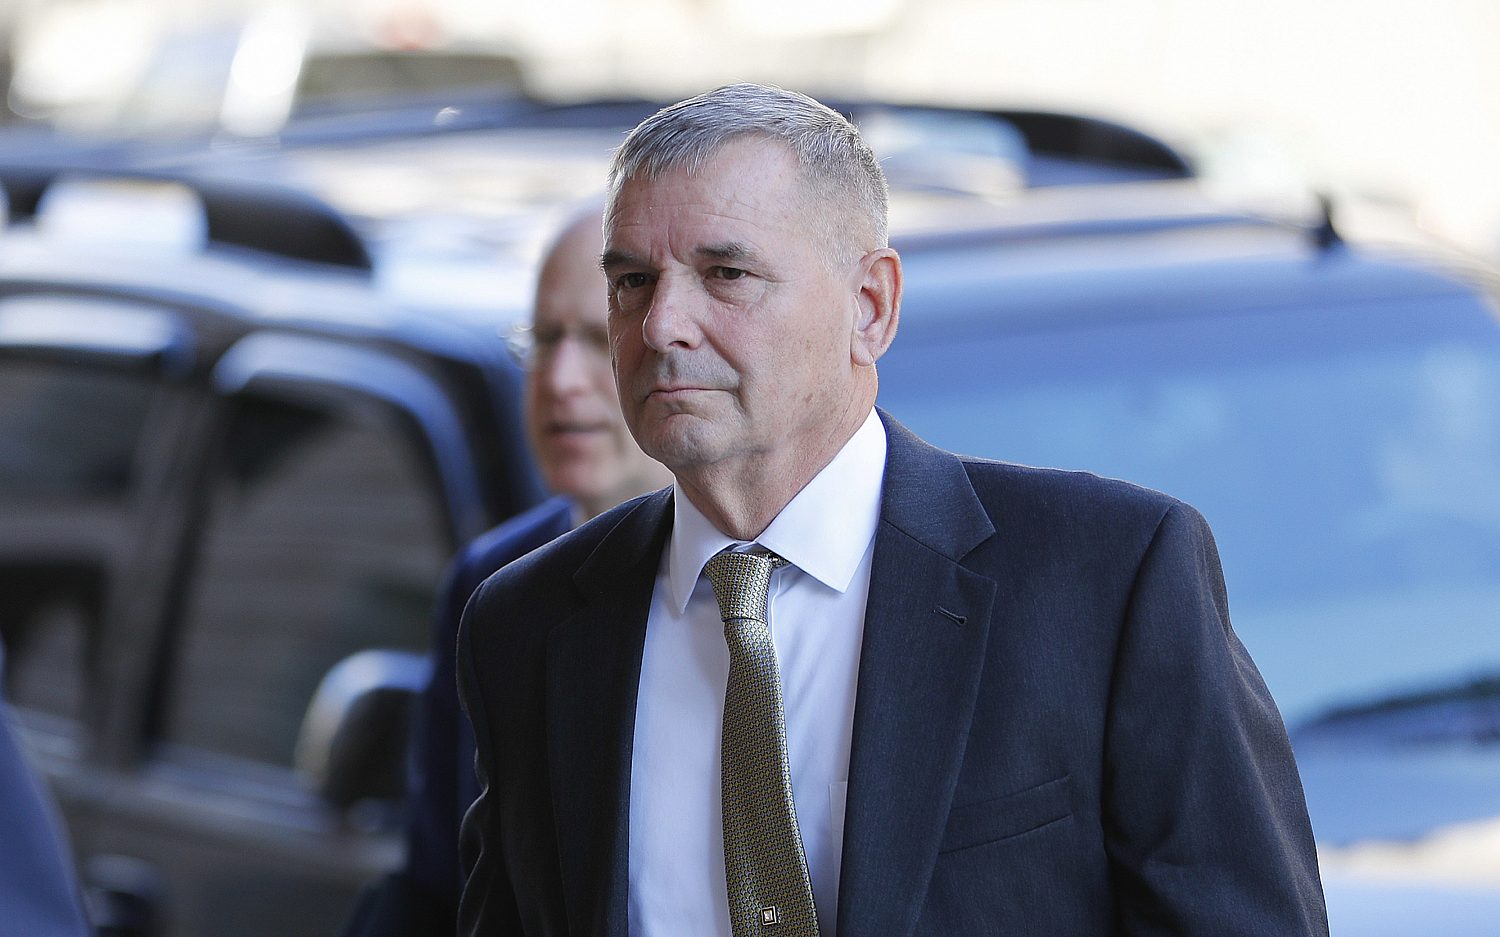 4-star general pleads guilty to perjury in leak probe